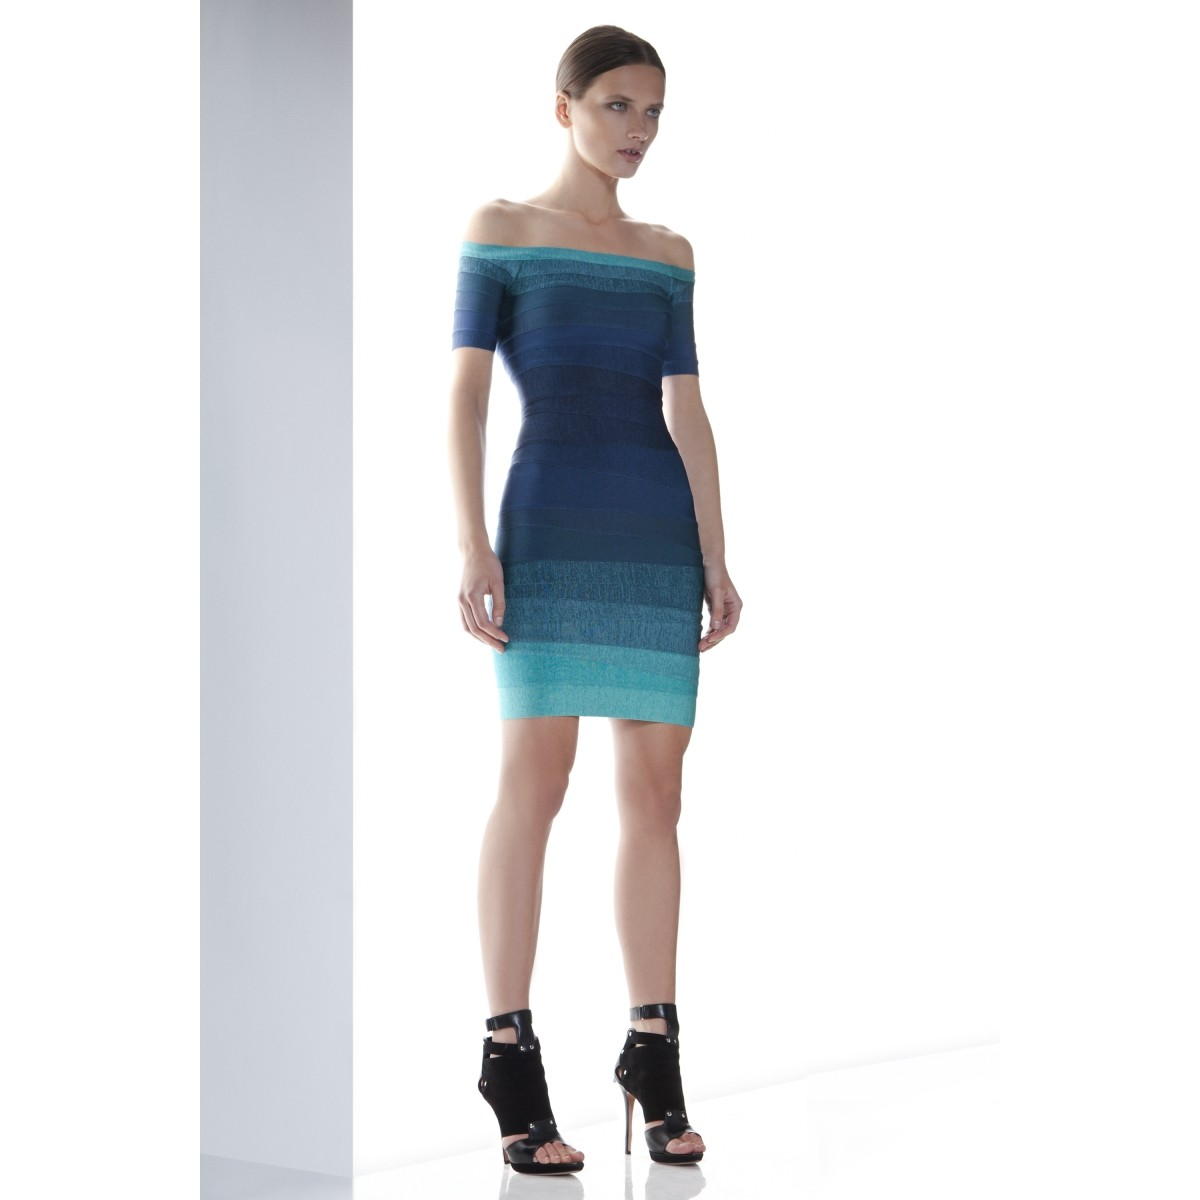 Herve Leger Johanna Ombre Bandage Dress